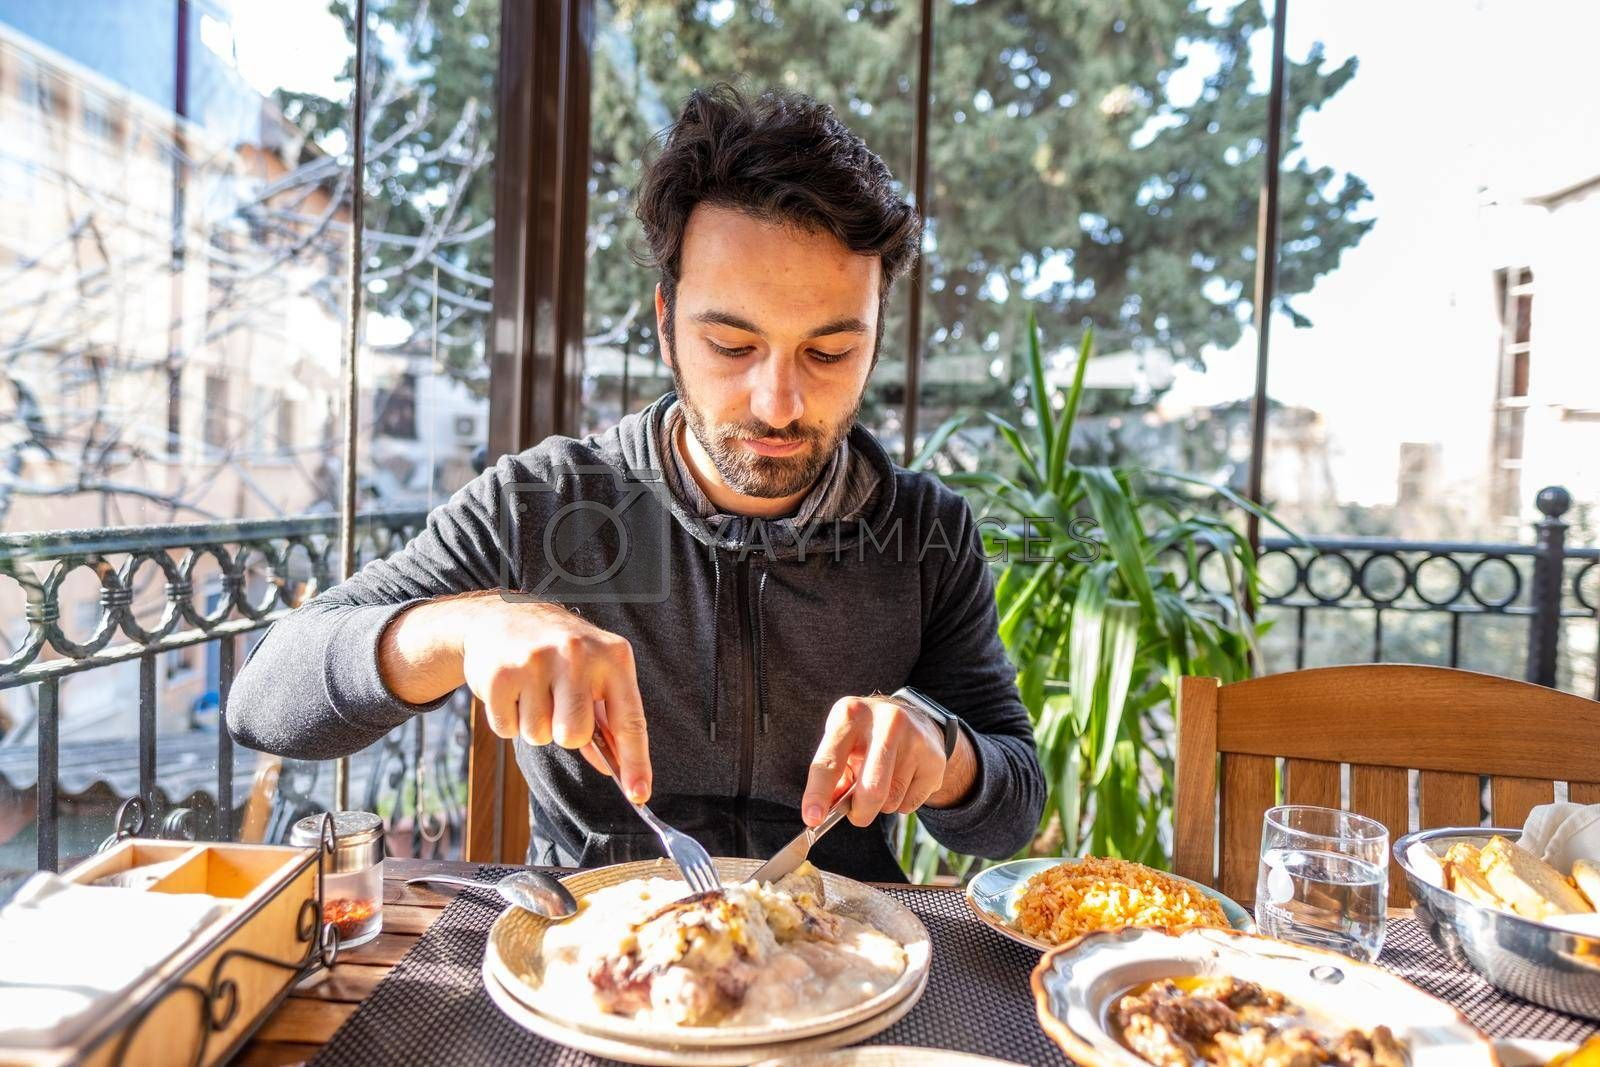 happy male person eats his meal on plate in a restaurant